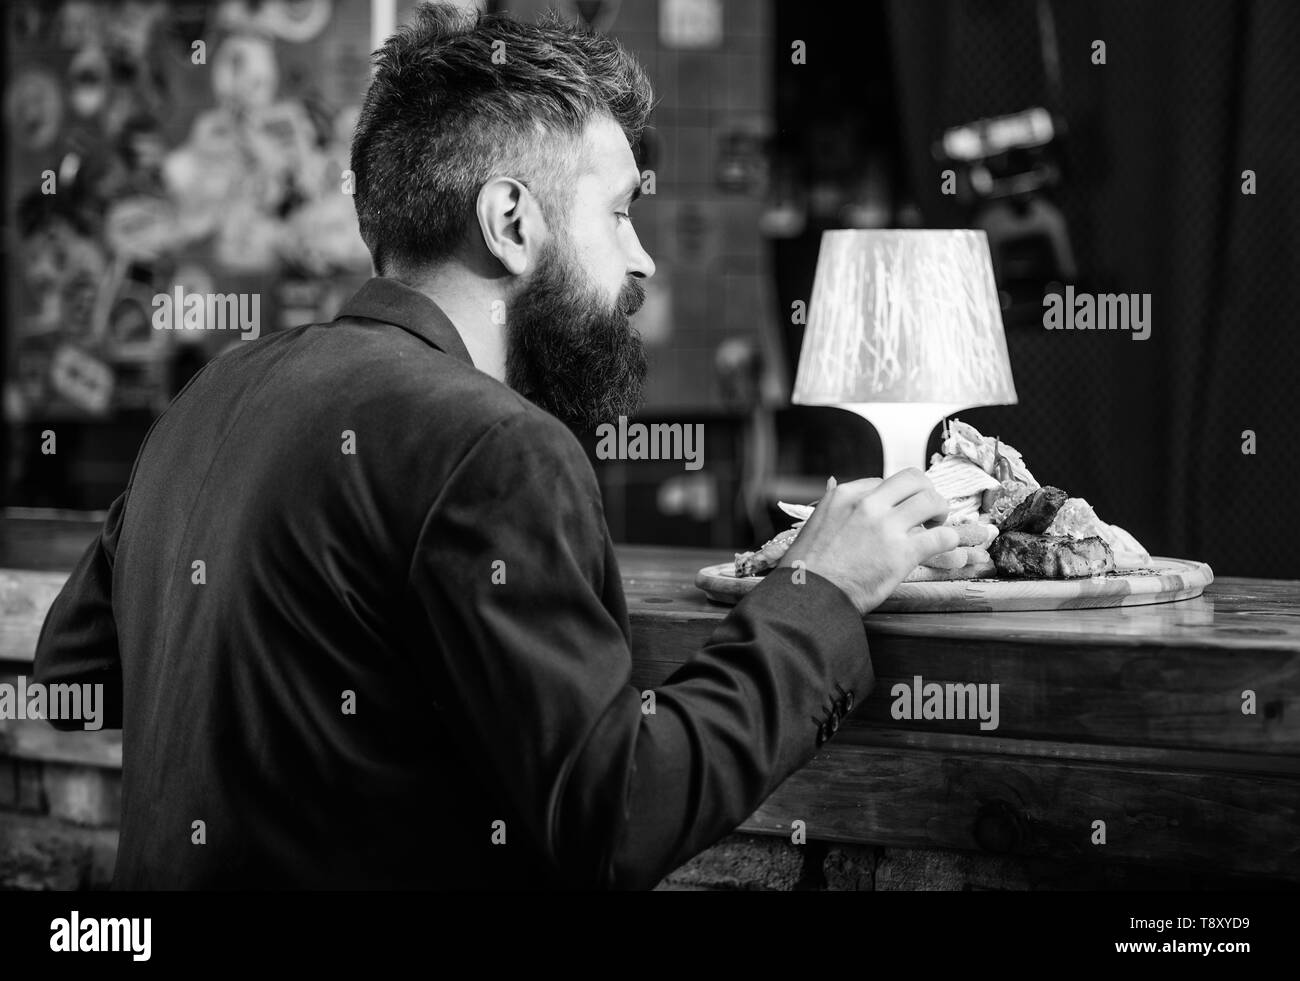 Enjoy meal. Restaurant client. Hipster formal suit sit at bar counter. Man received meal with fried potato fish sticks meat. Delicious meal. Cheat meal concept. Hipster hungry eat pub fried food. - Stock Image